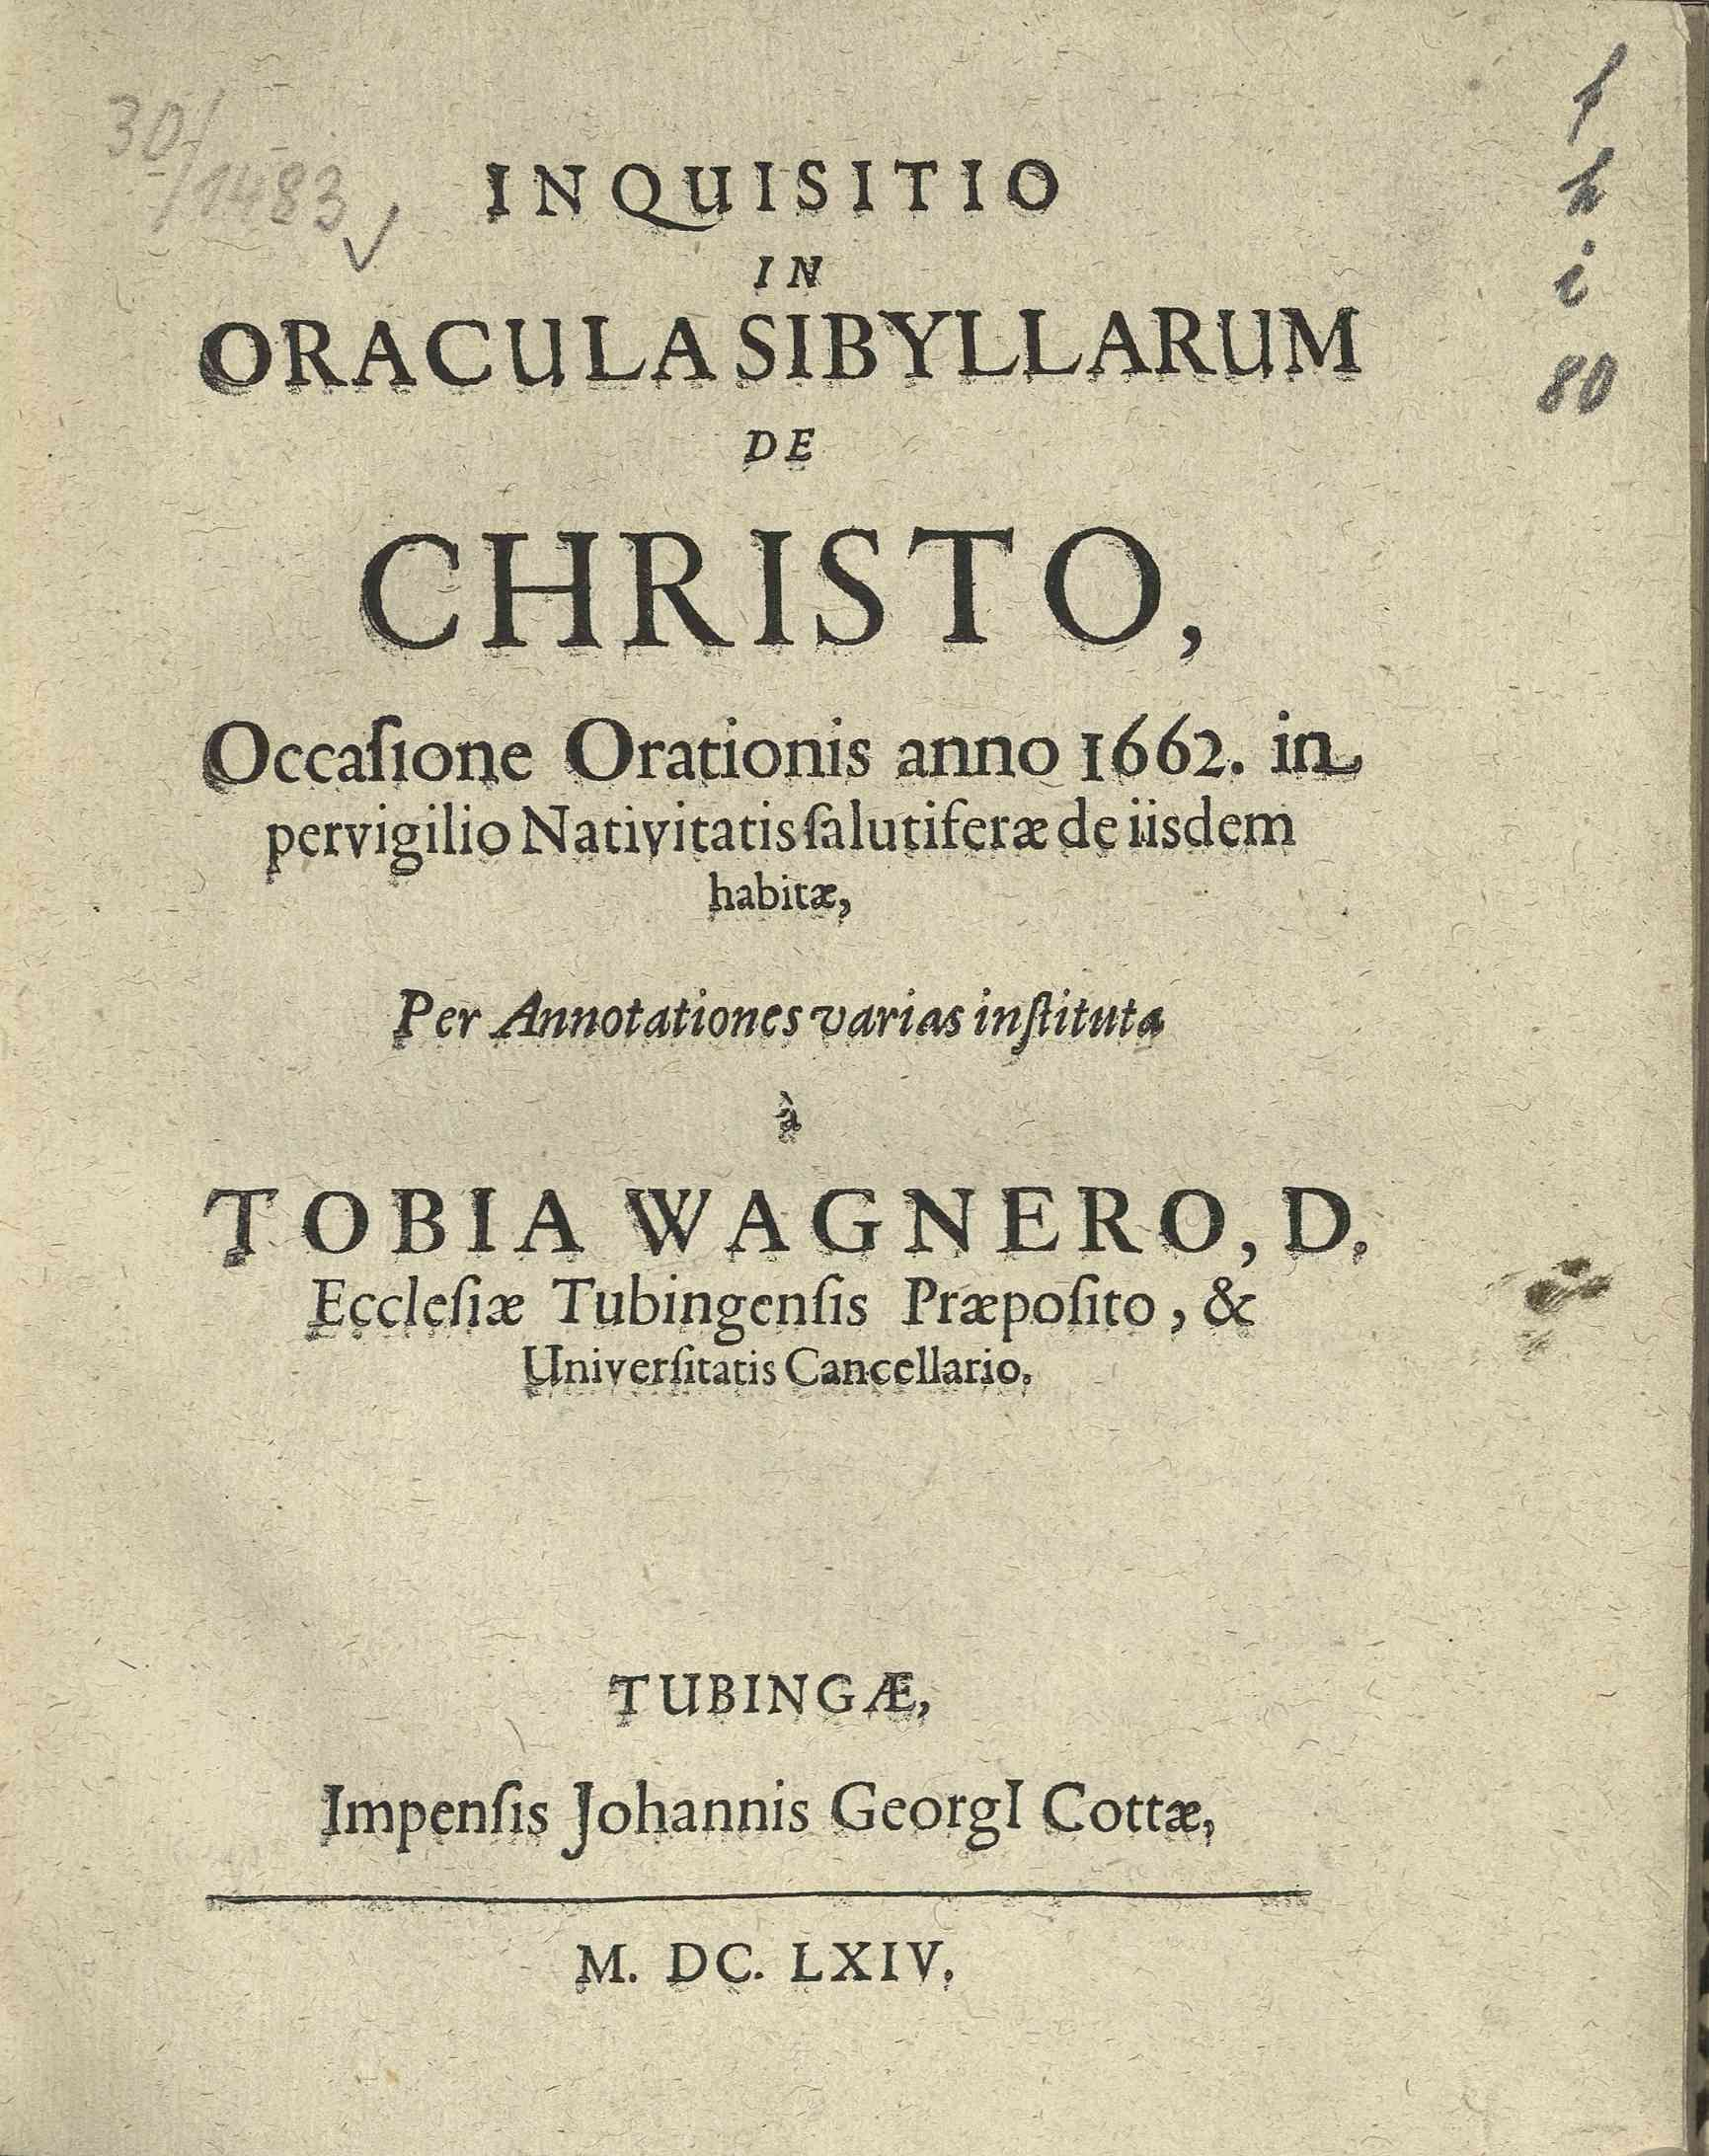 Inquisitio in oracula sibyllarum de Christo, occasione orationis anno 1662...